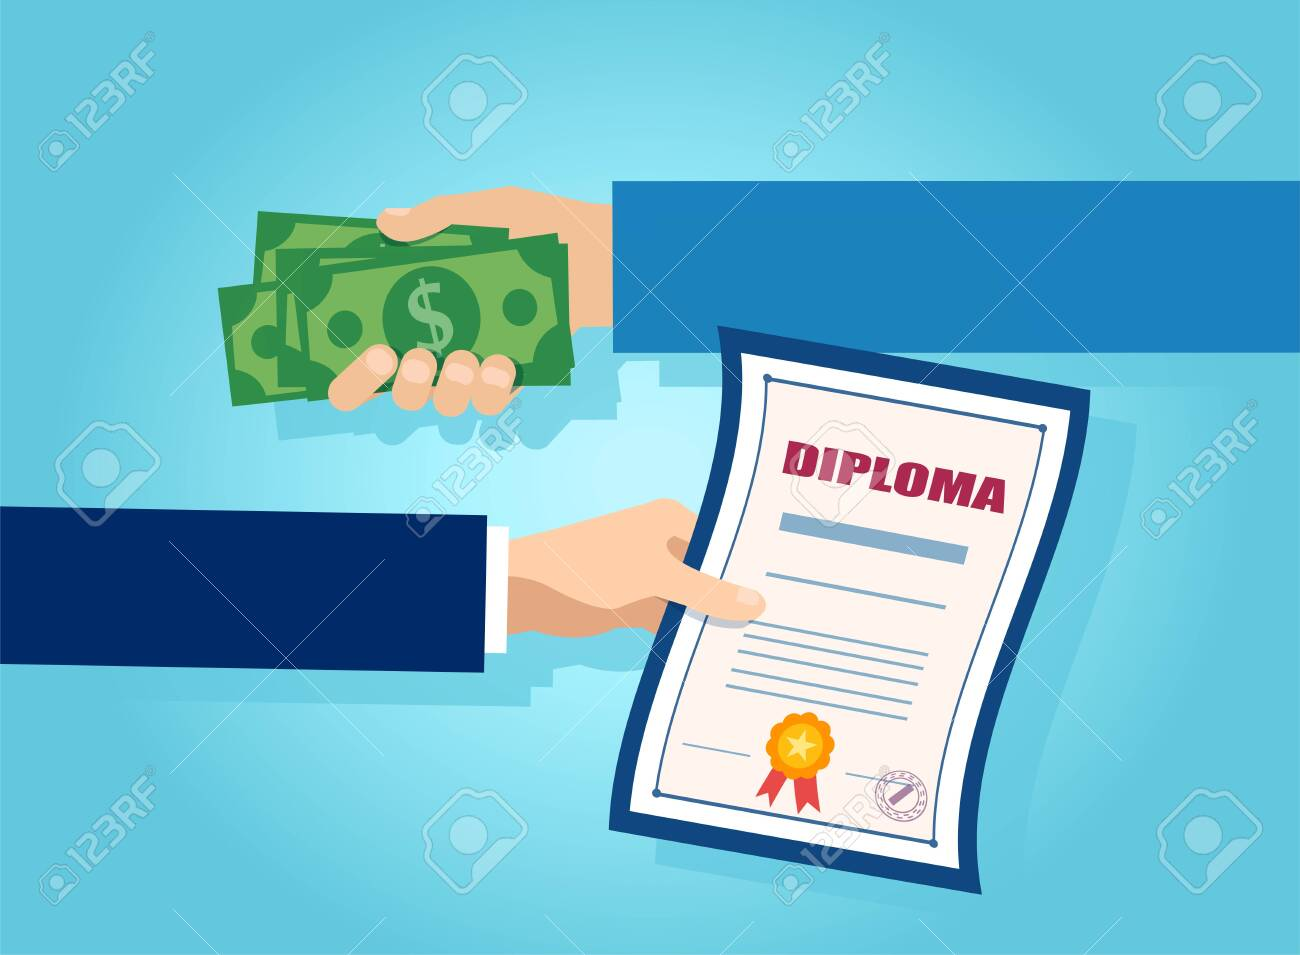 Vector of one hand offering money in exchange for a college diploma - 139688847